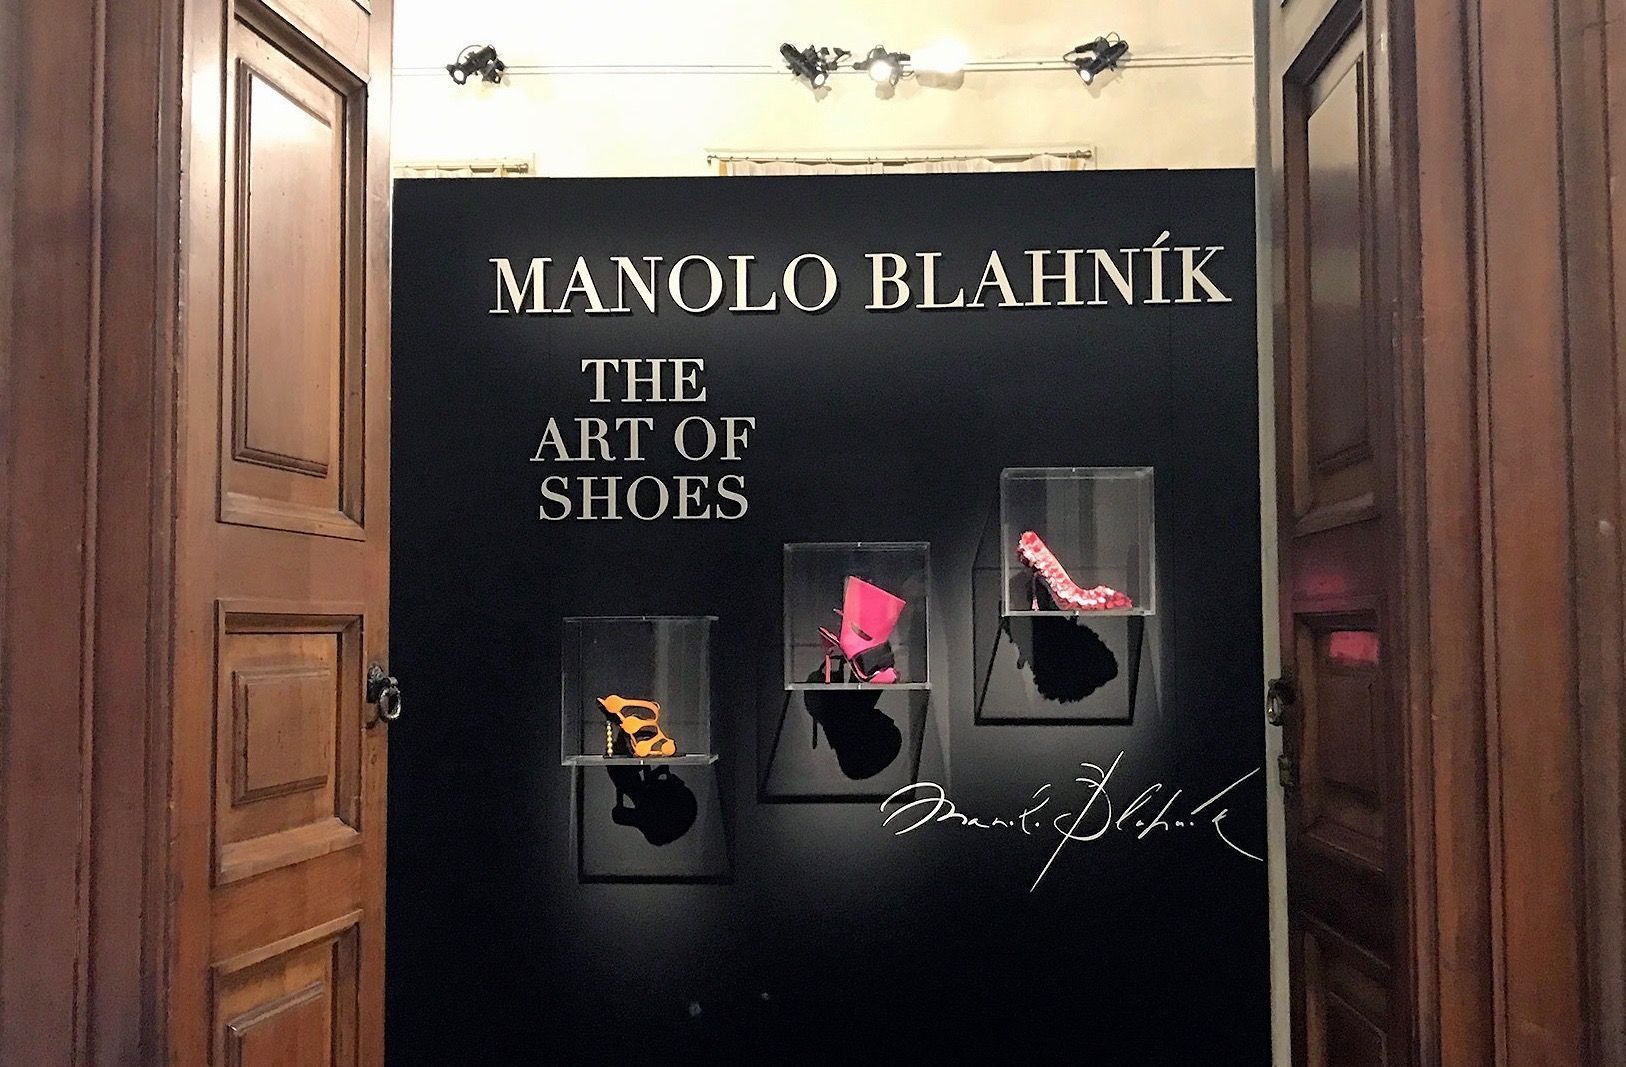 The art of shoes: la mostra di Manolo Blahnik a Milano.